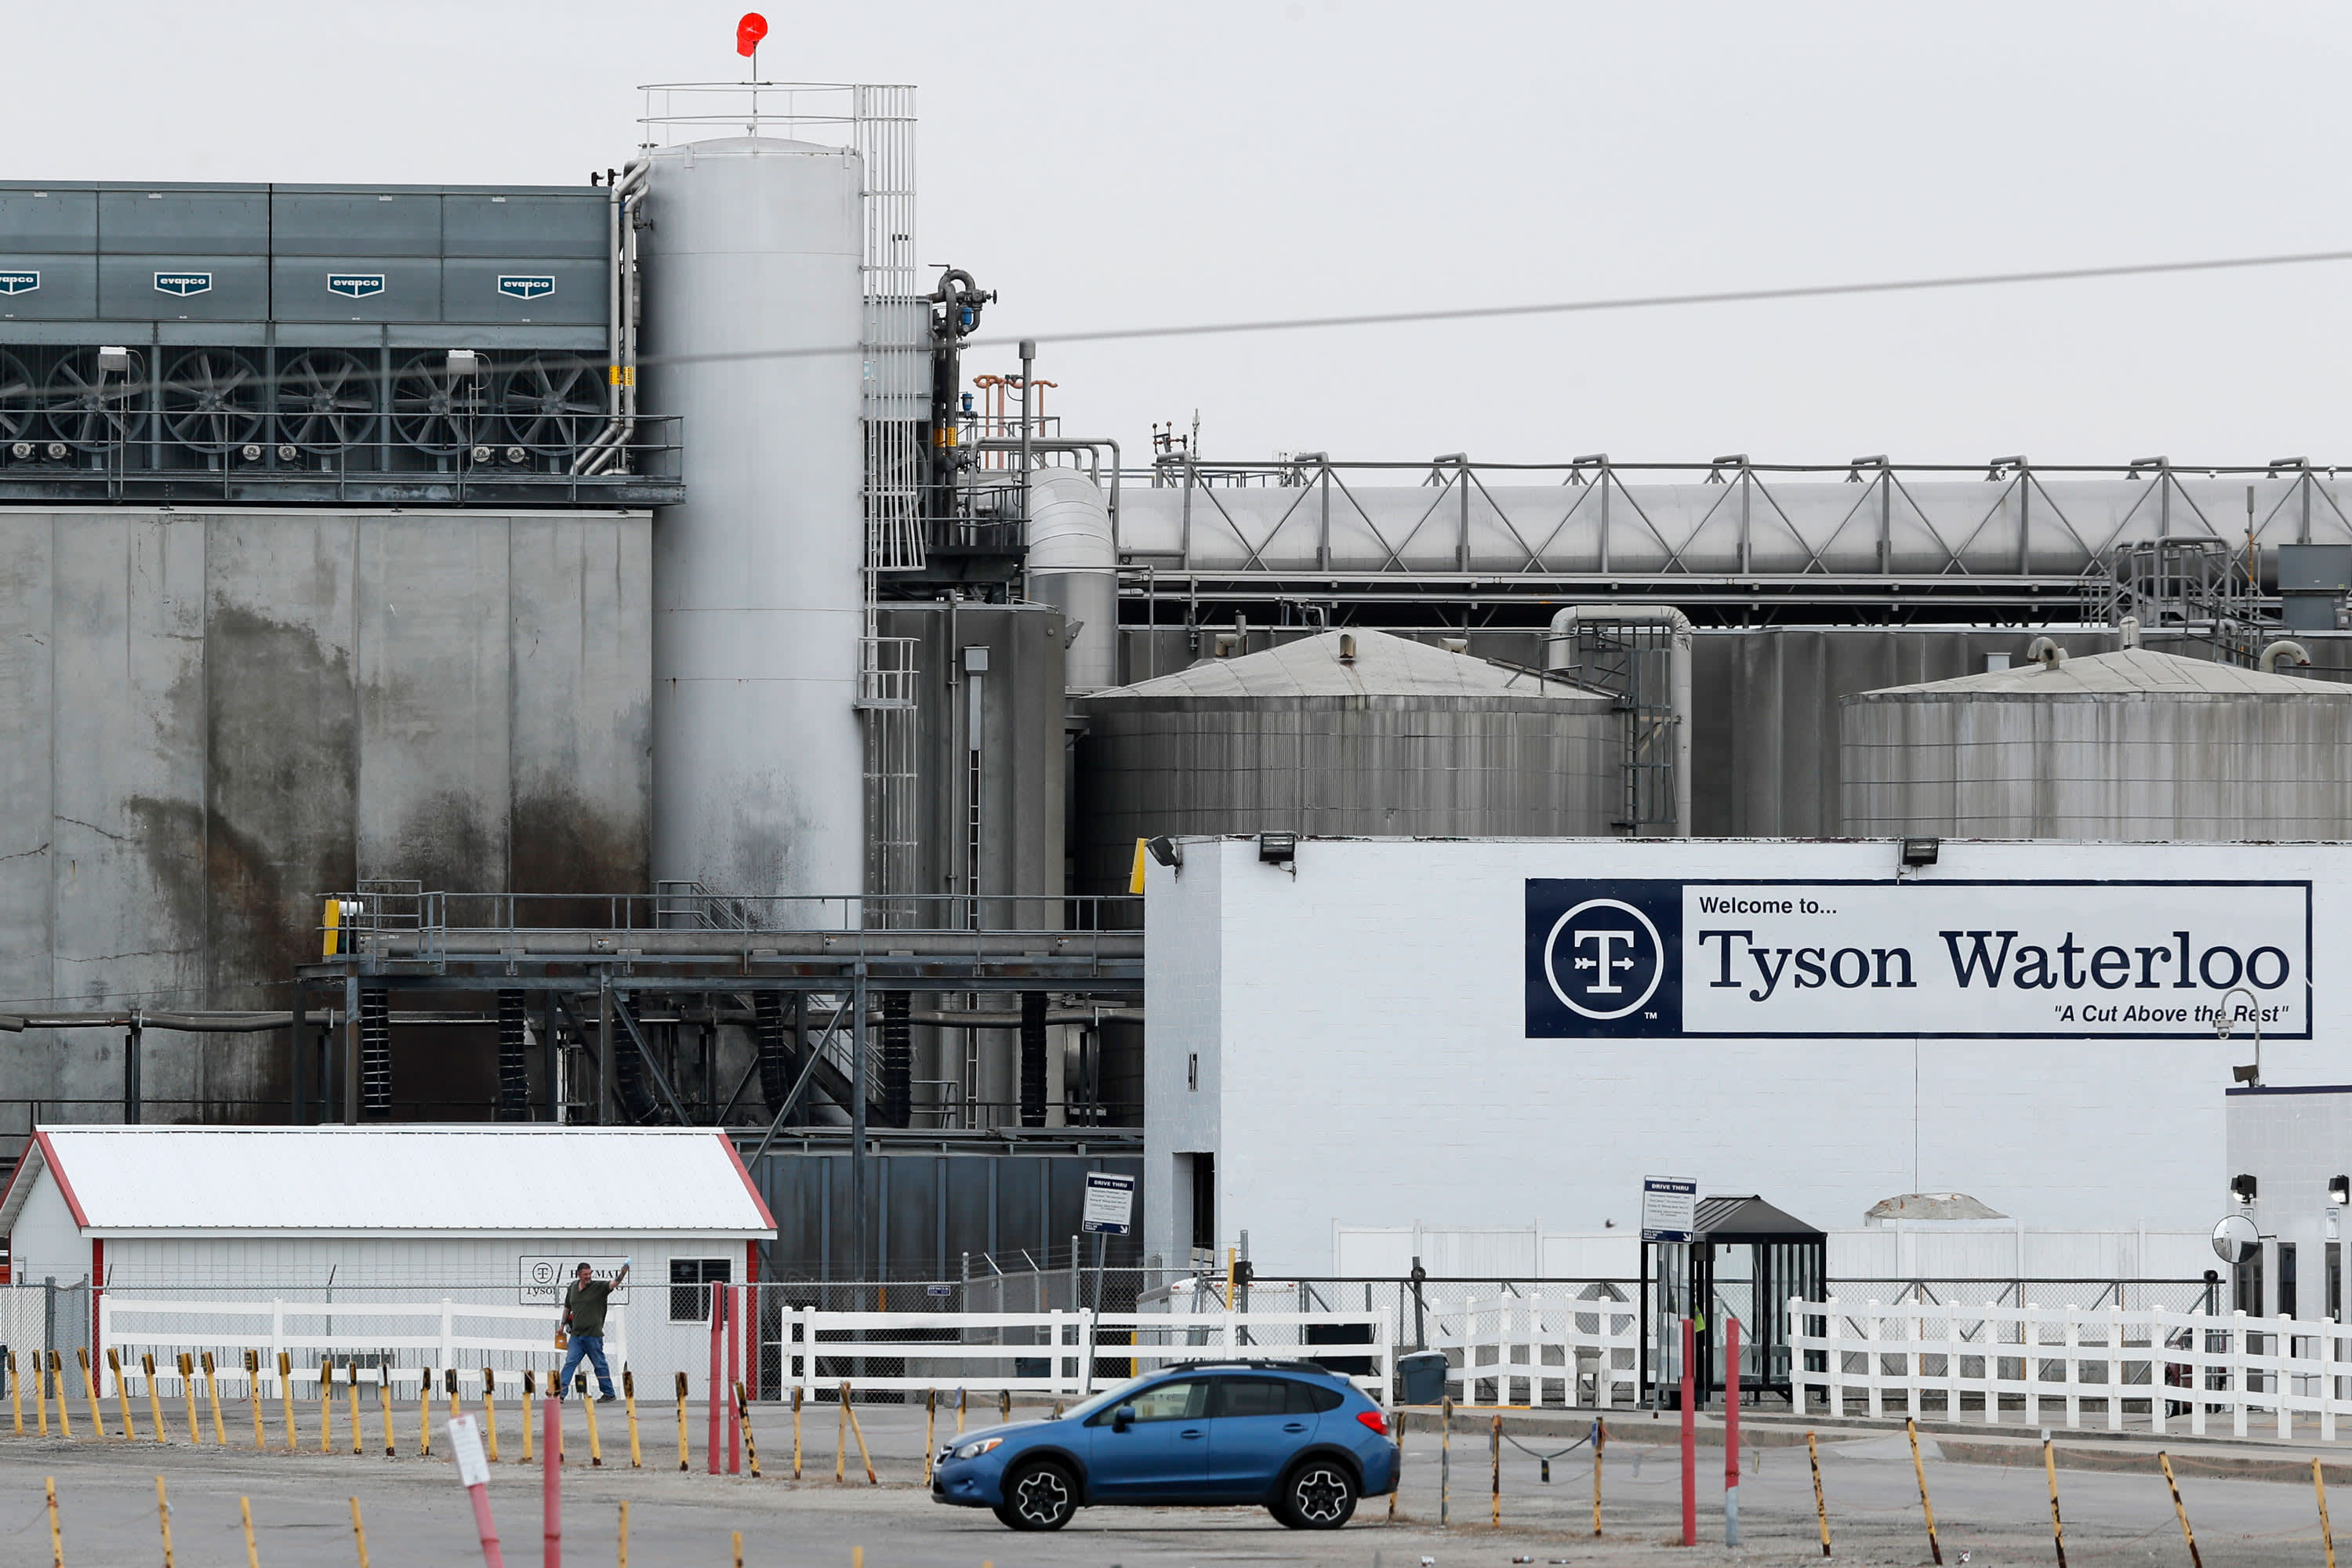 Covid Vaccines Tyson Foods Begins Vaccinating Workers But Struggles To Find Doses